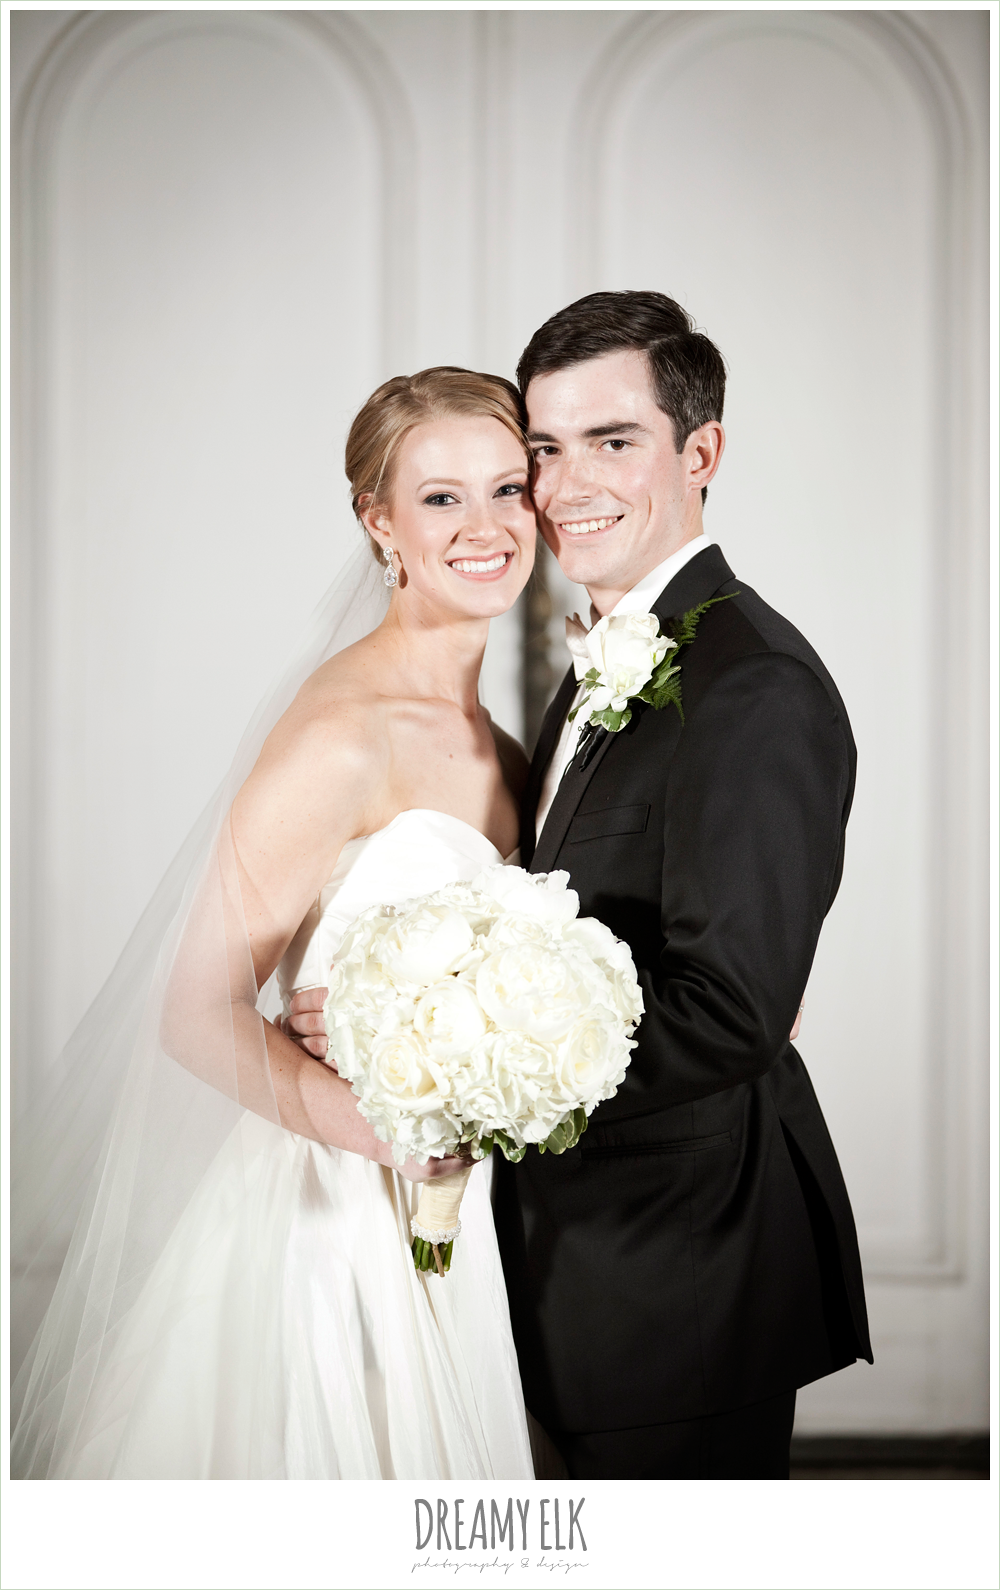 bride and groom, white wedding bouquet, winter wedding, austin wedding photographer, dreamy elk photography and design